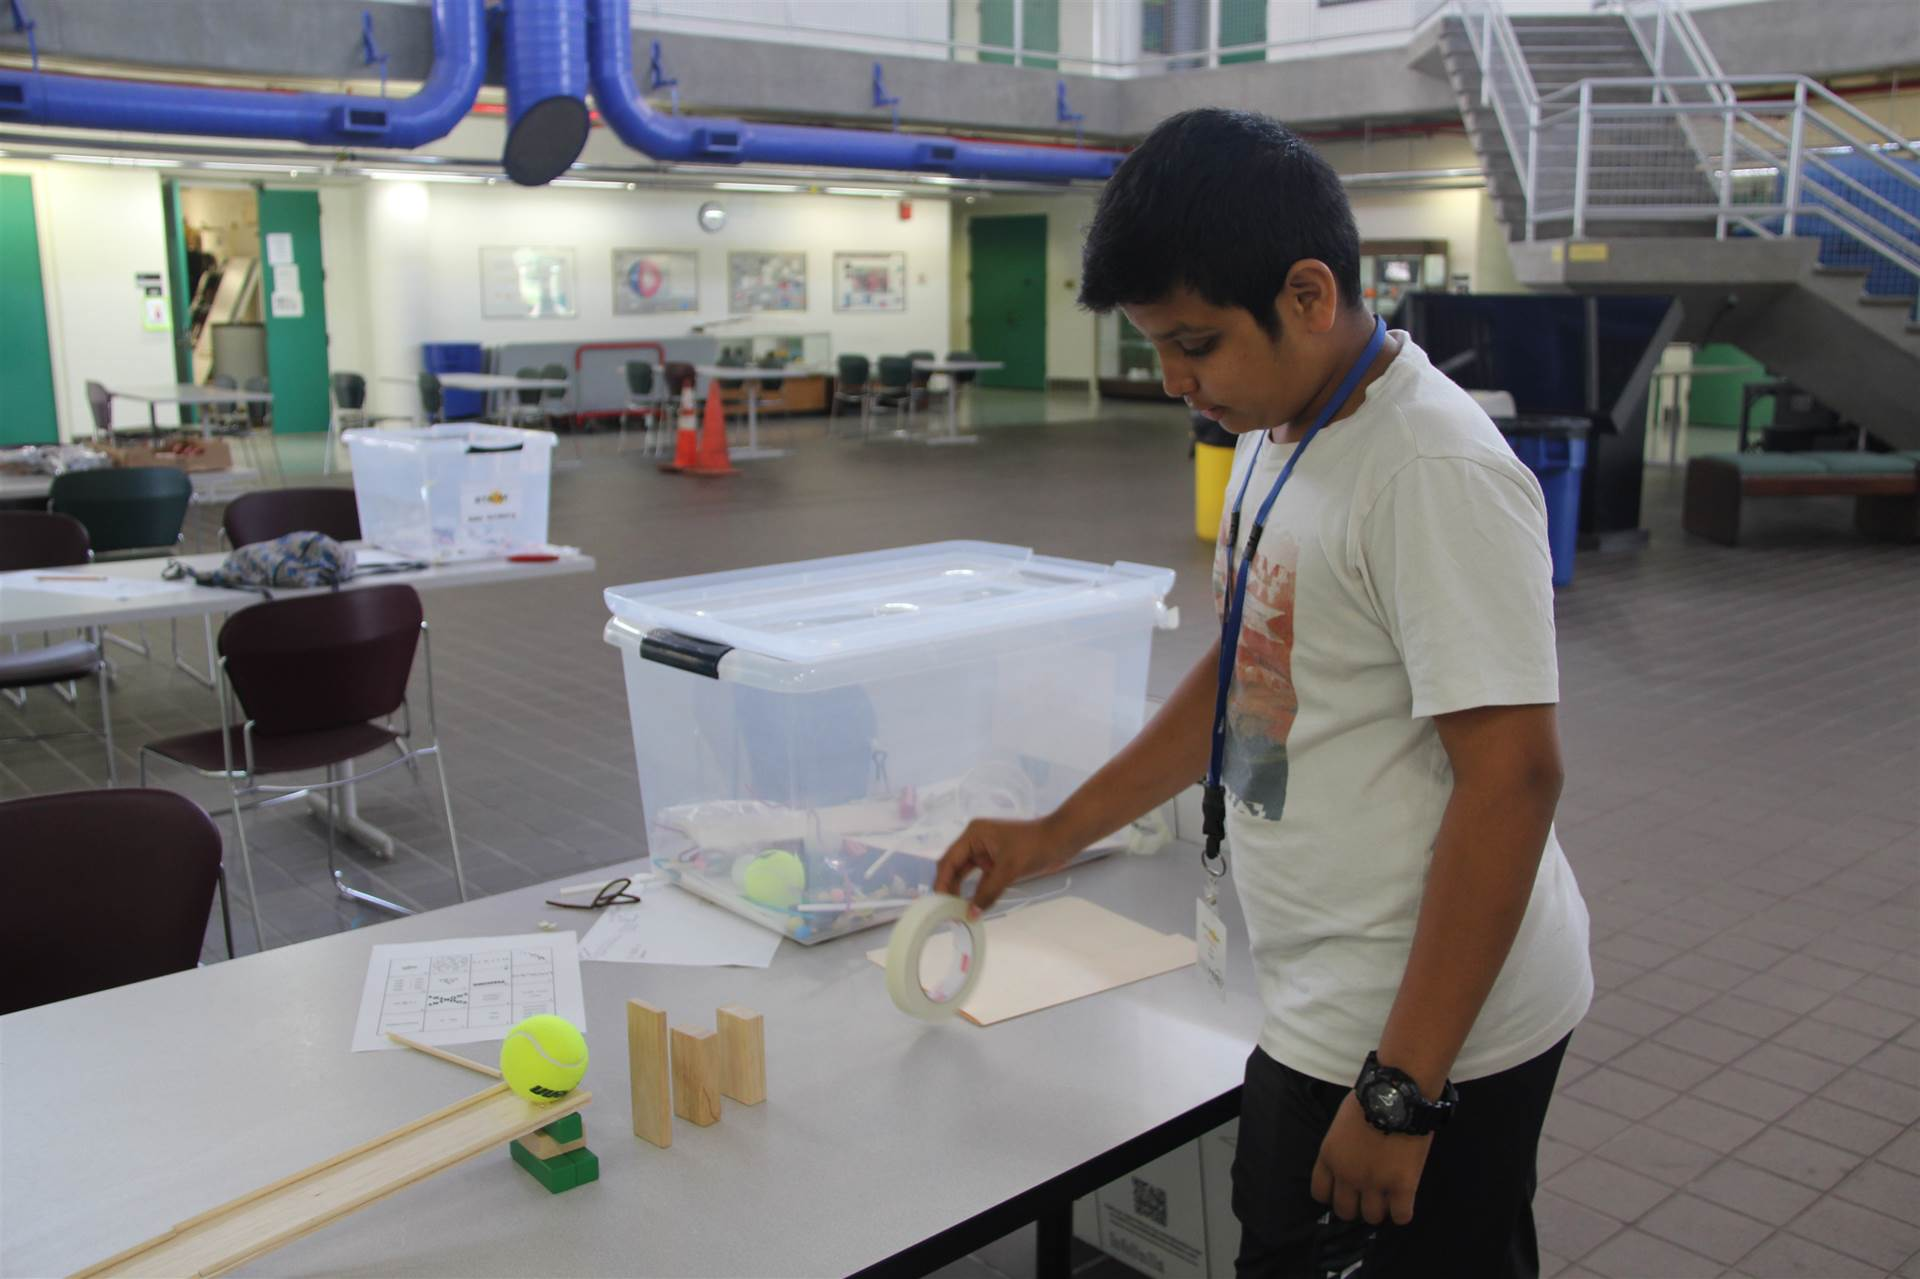 student tests project at boces summer steam academy